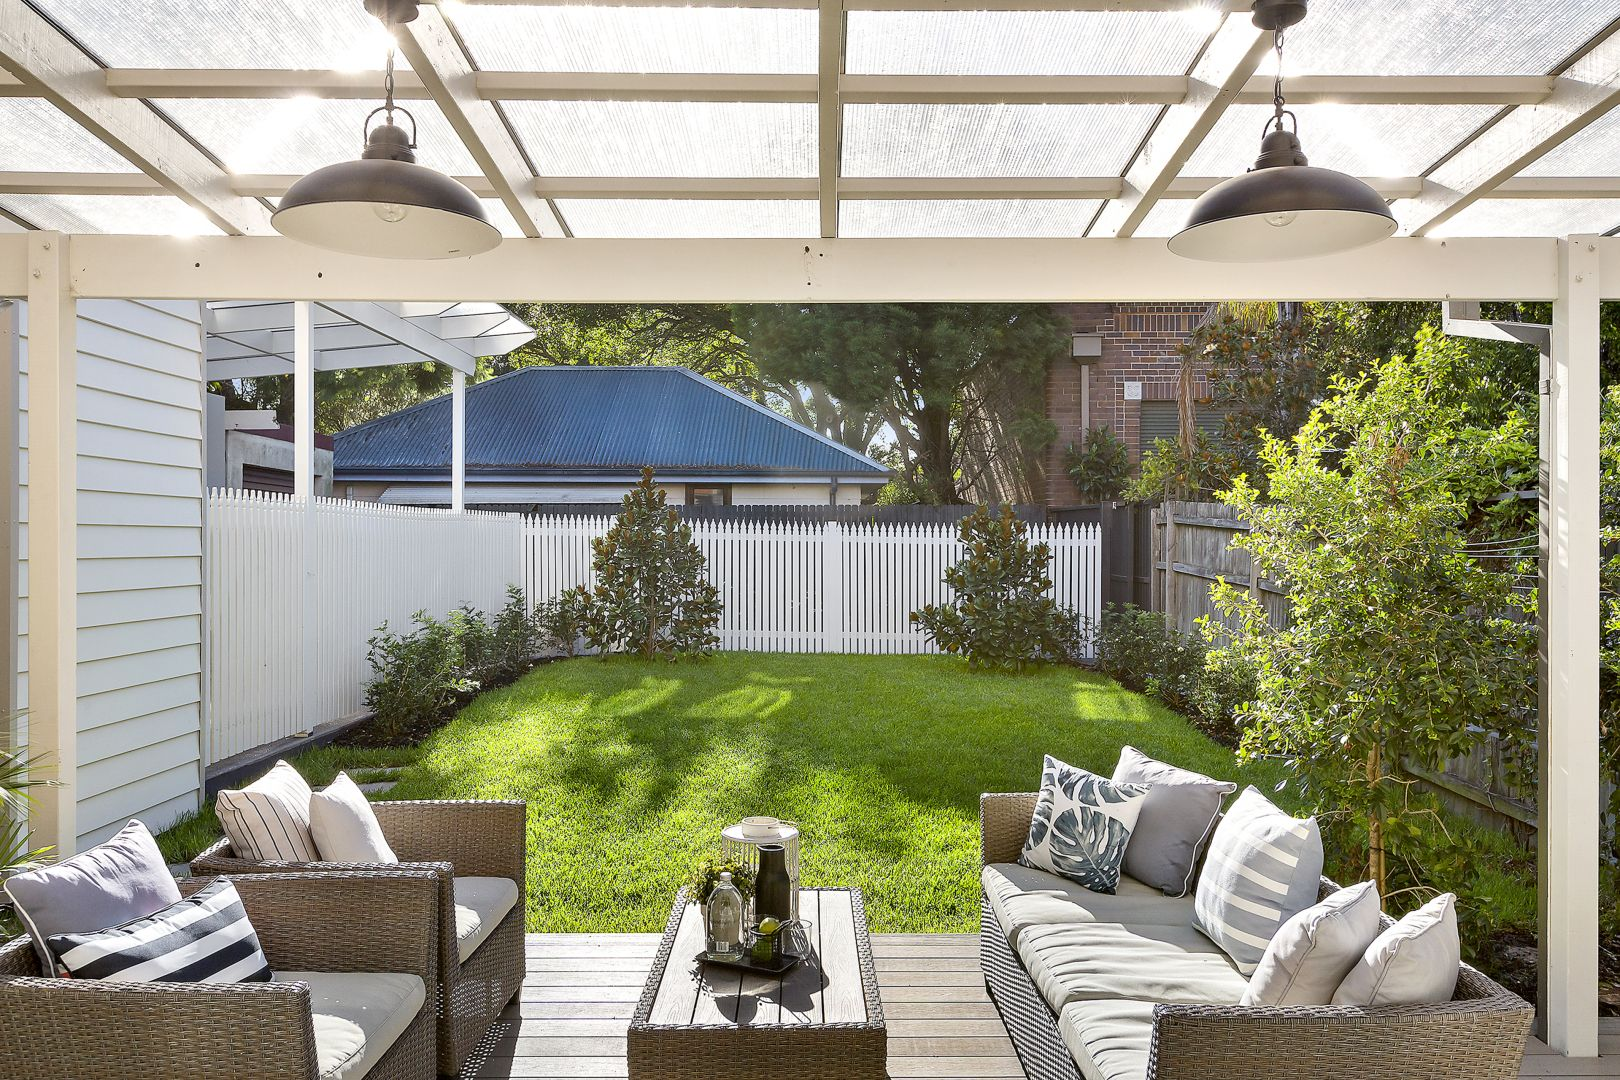 Even simple styling of outdoor areas increases appeal.